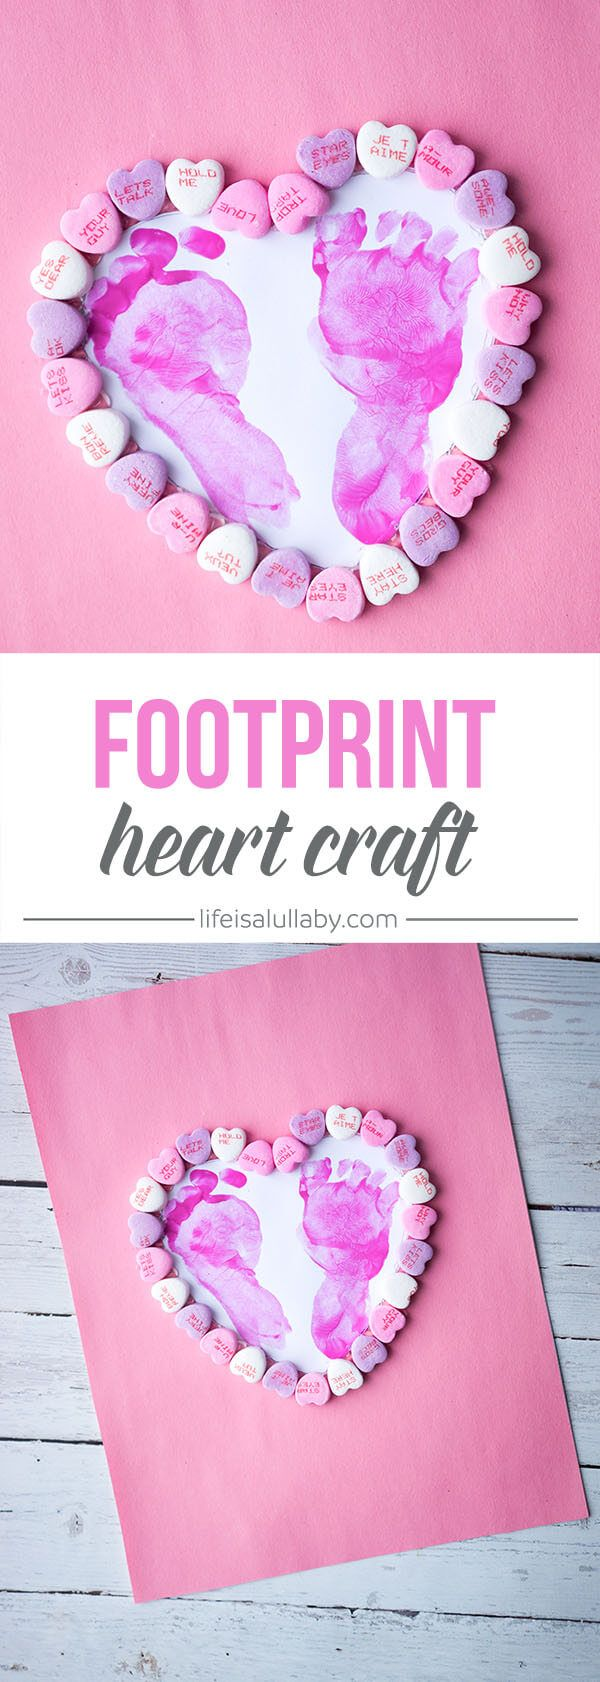 286 best for my classroom images on Pinterest | Day care, Activities ...